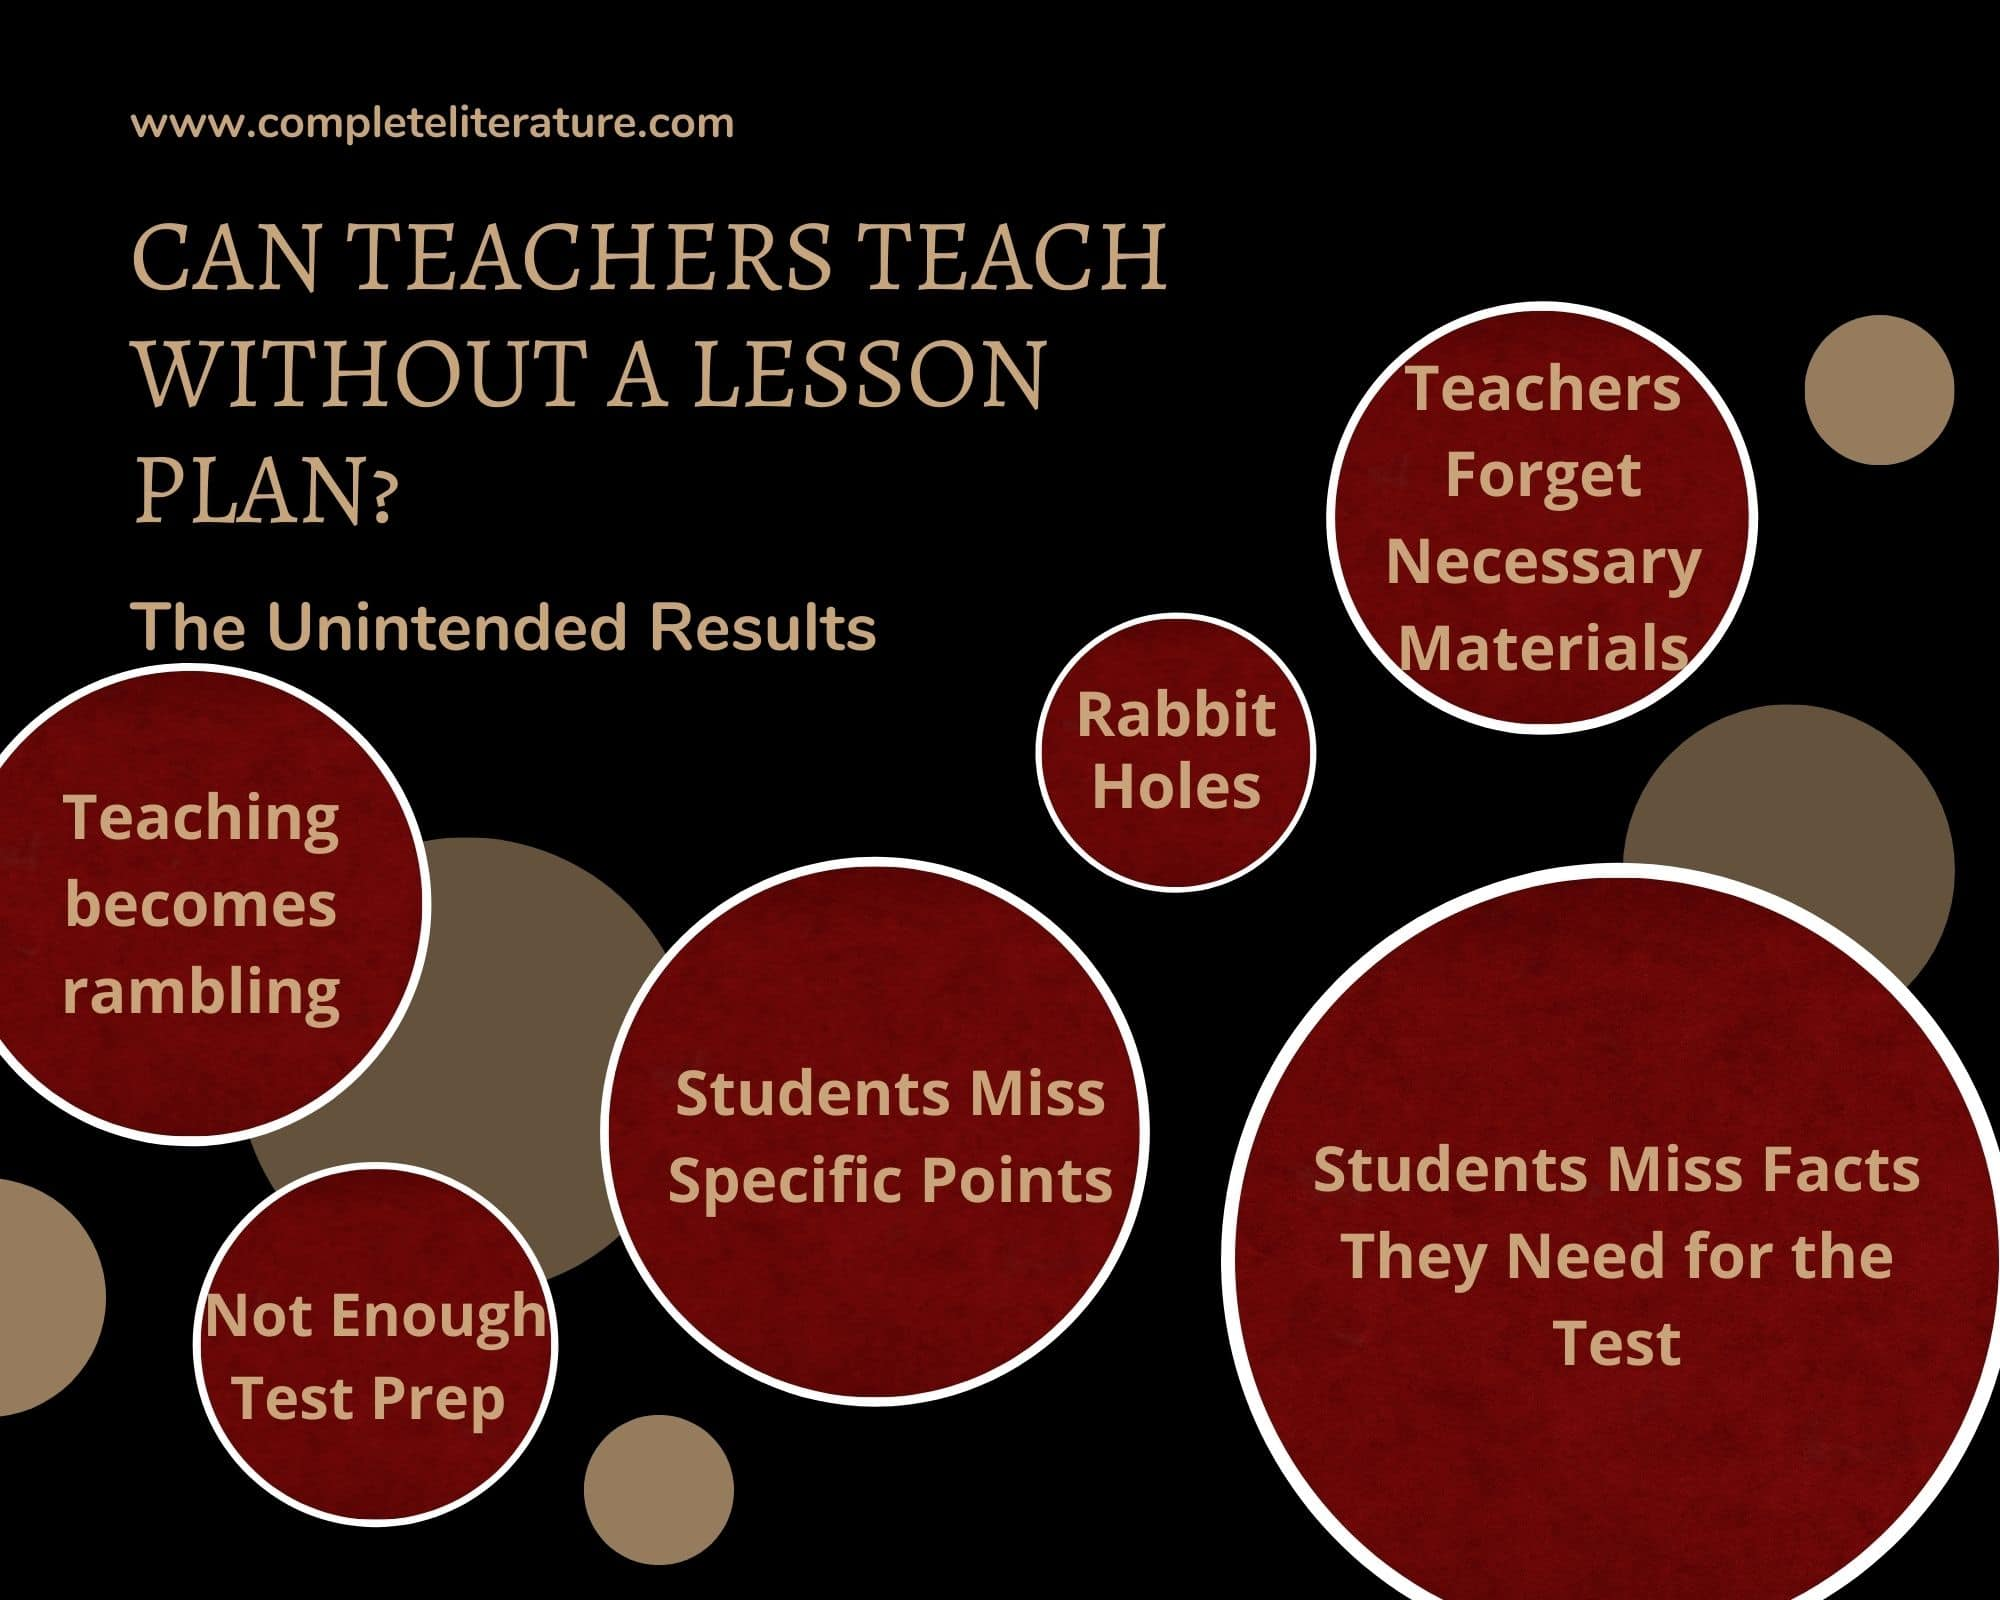 Can Teachers Teach Without a Lesson Plan?